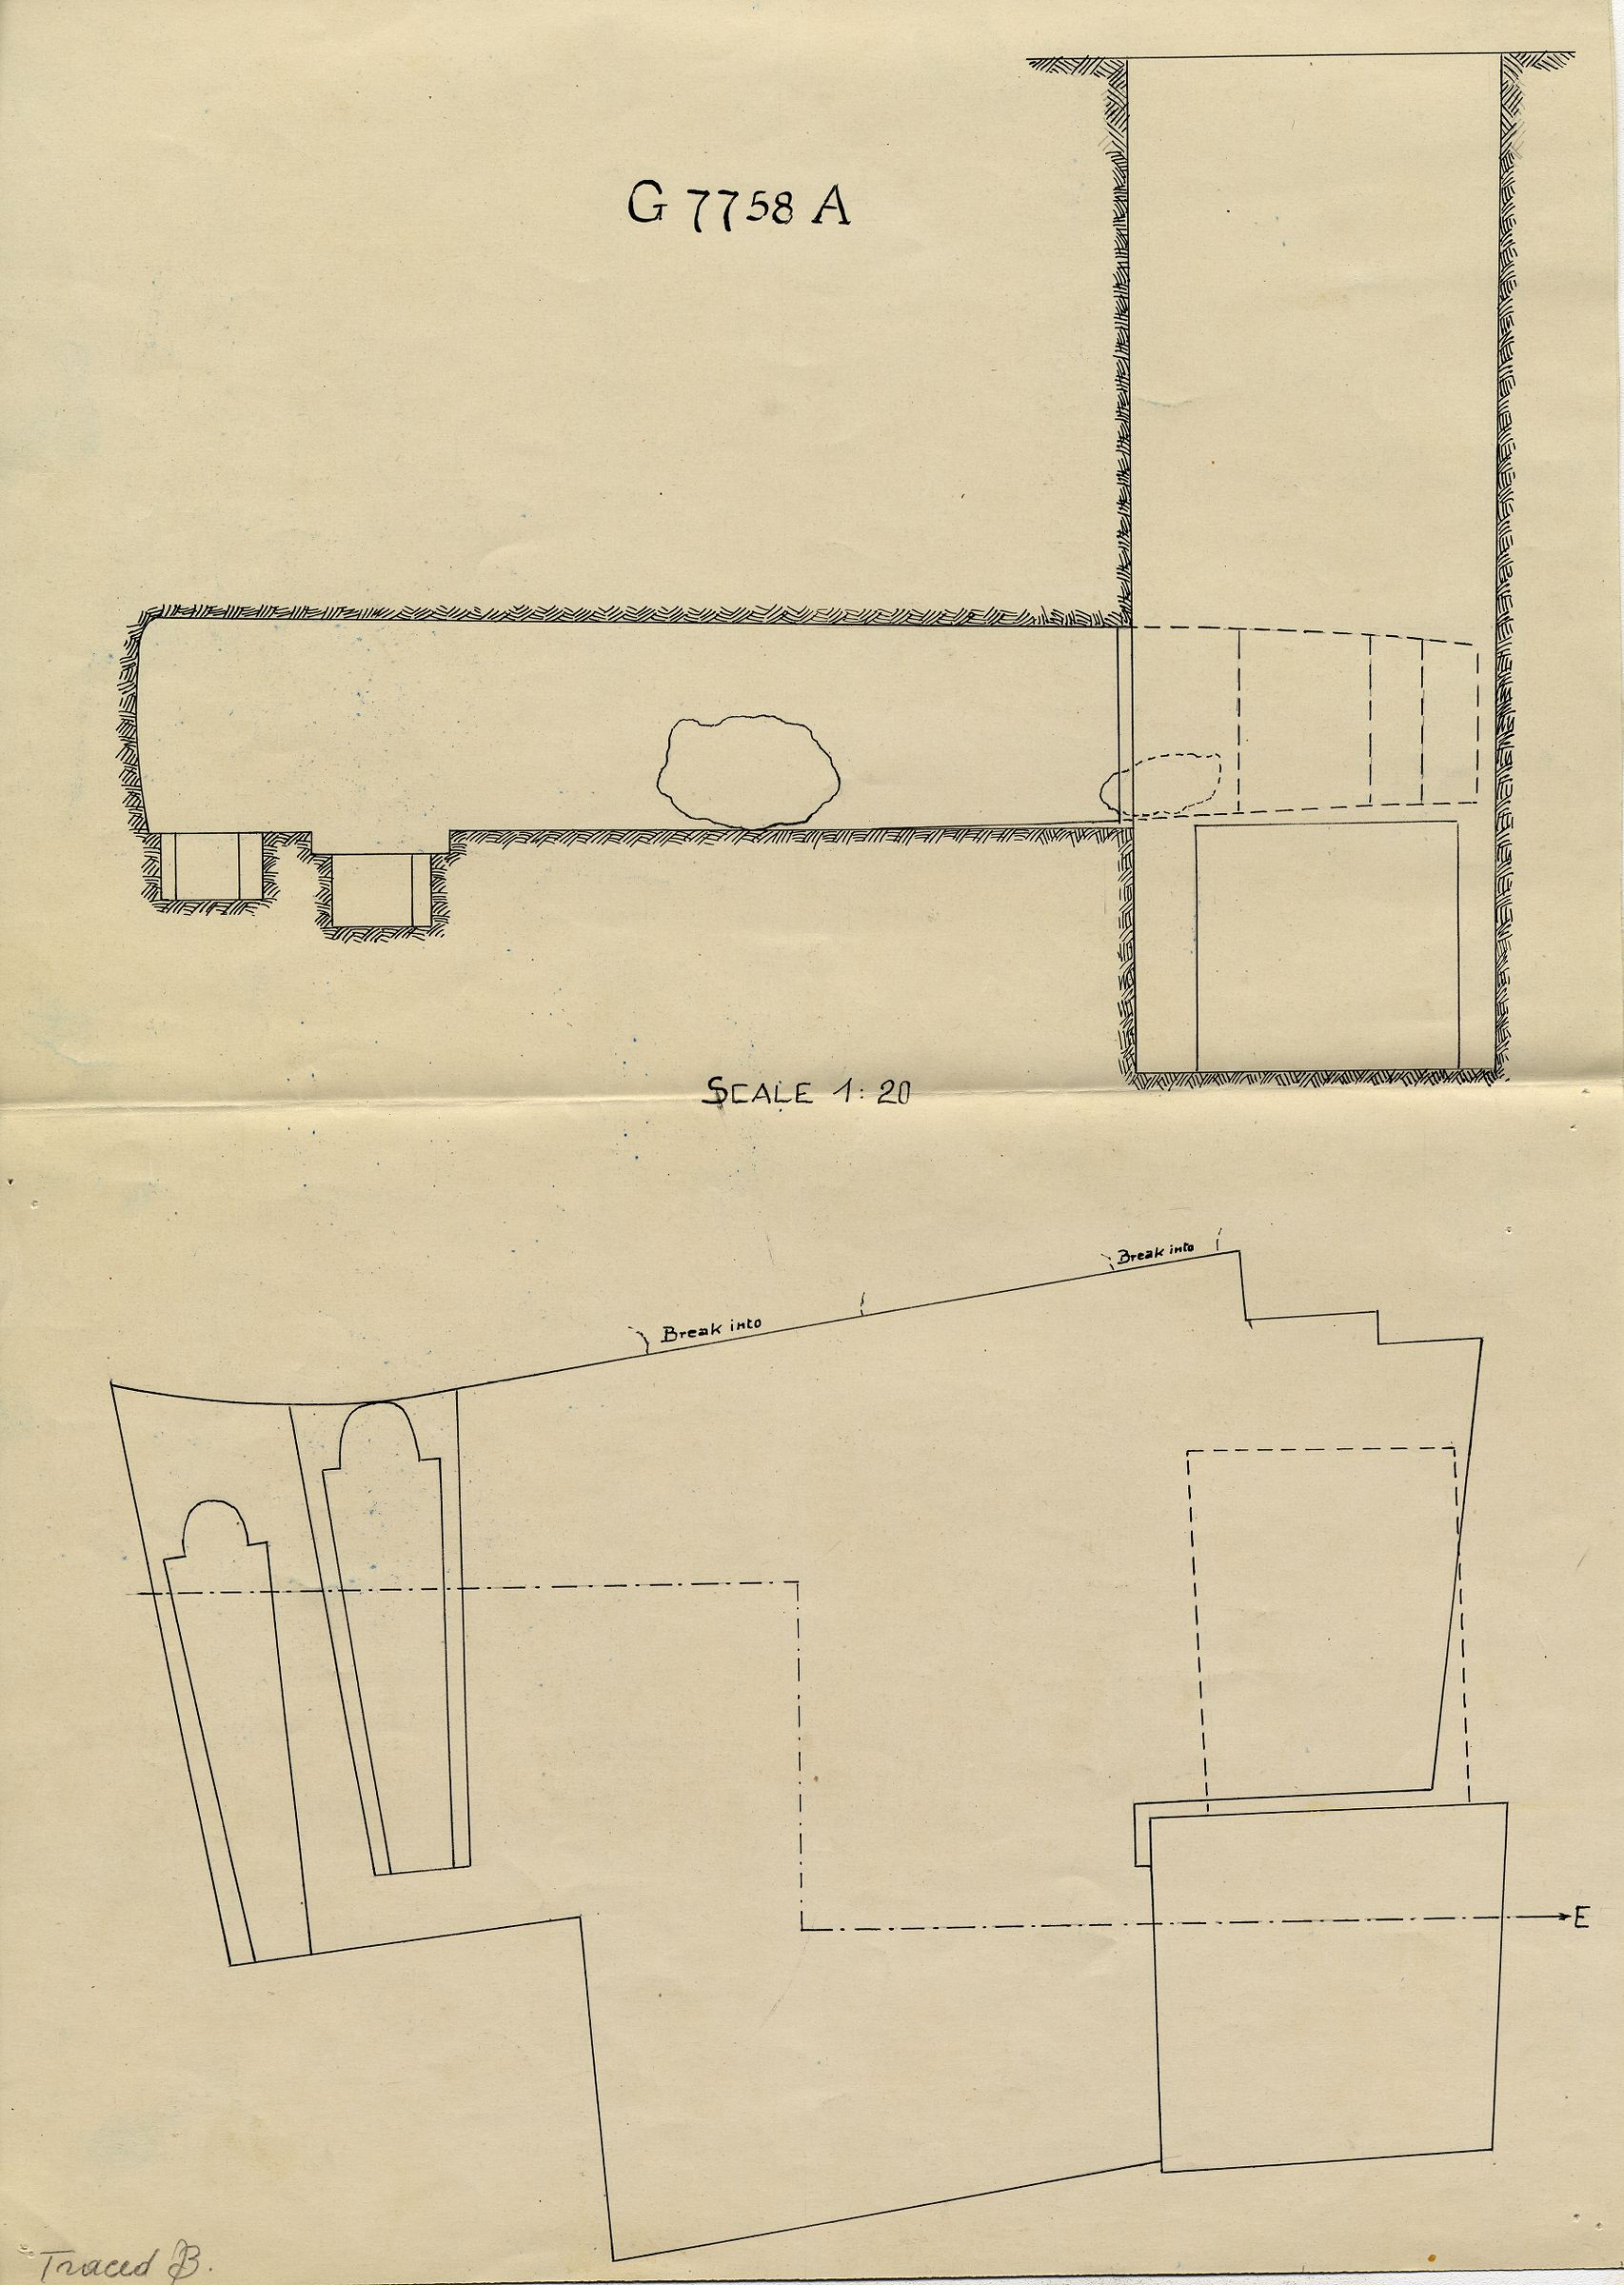 Maps and plans: G 7758, Shaft A